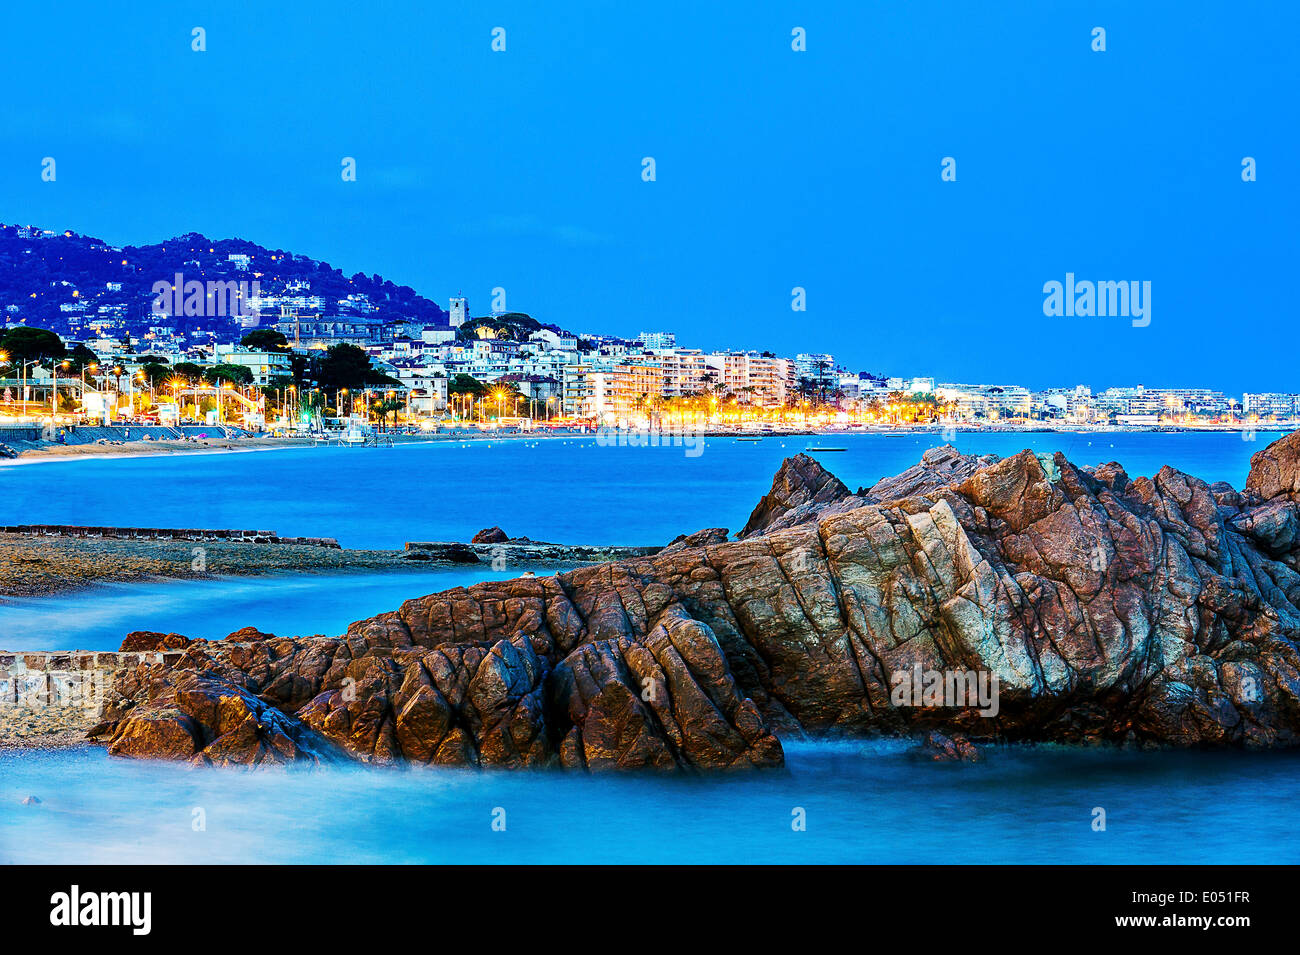 Europe, France, Alpes-Maritimes, Cannes. Bay of Cannes at dusk. - Stock Image